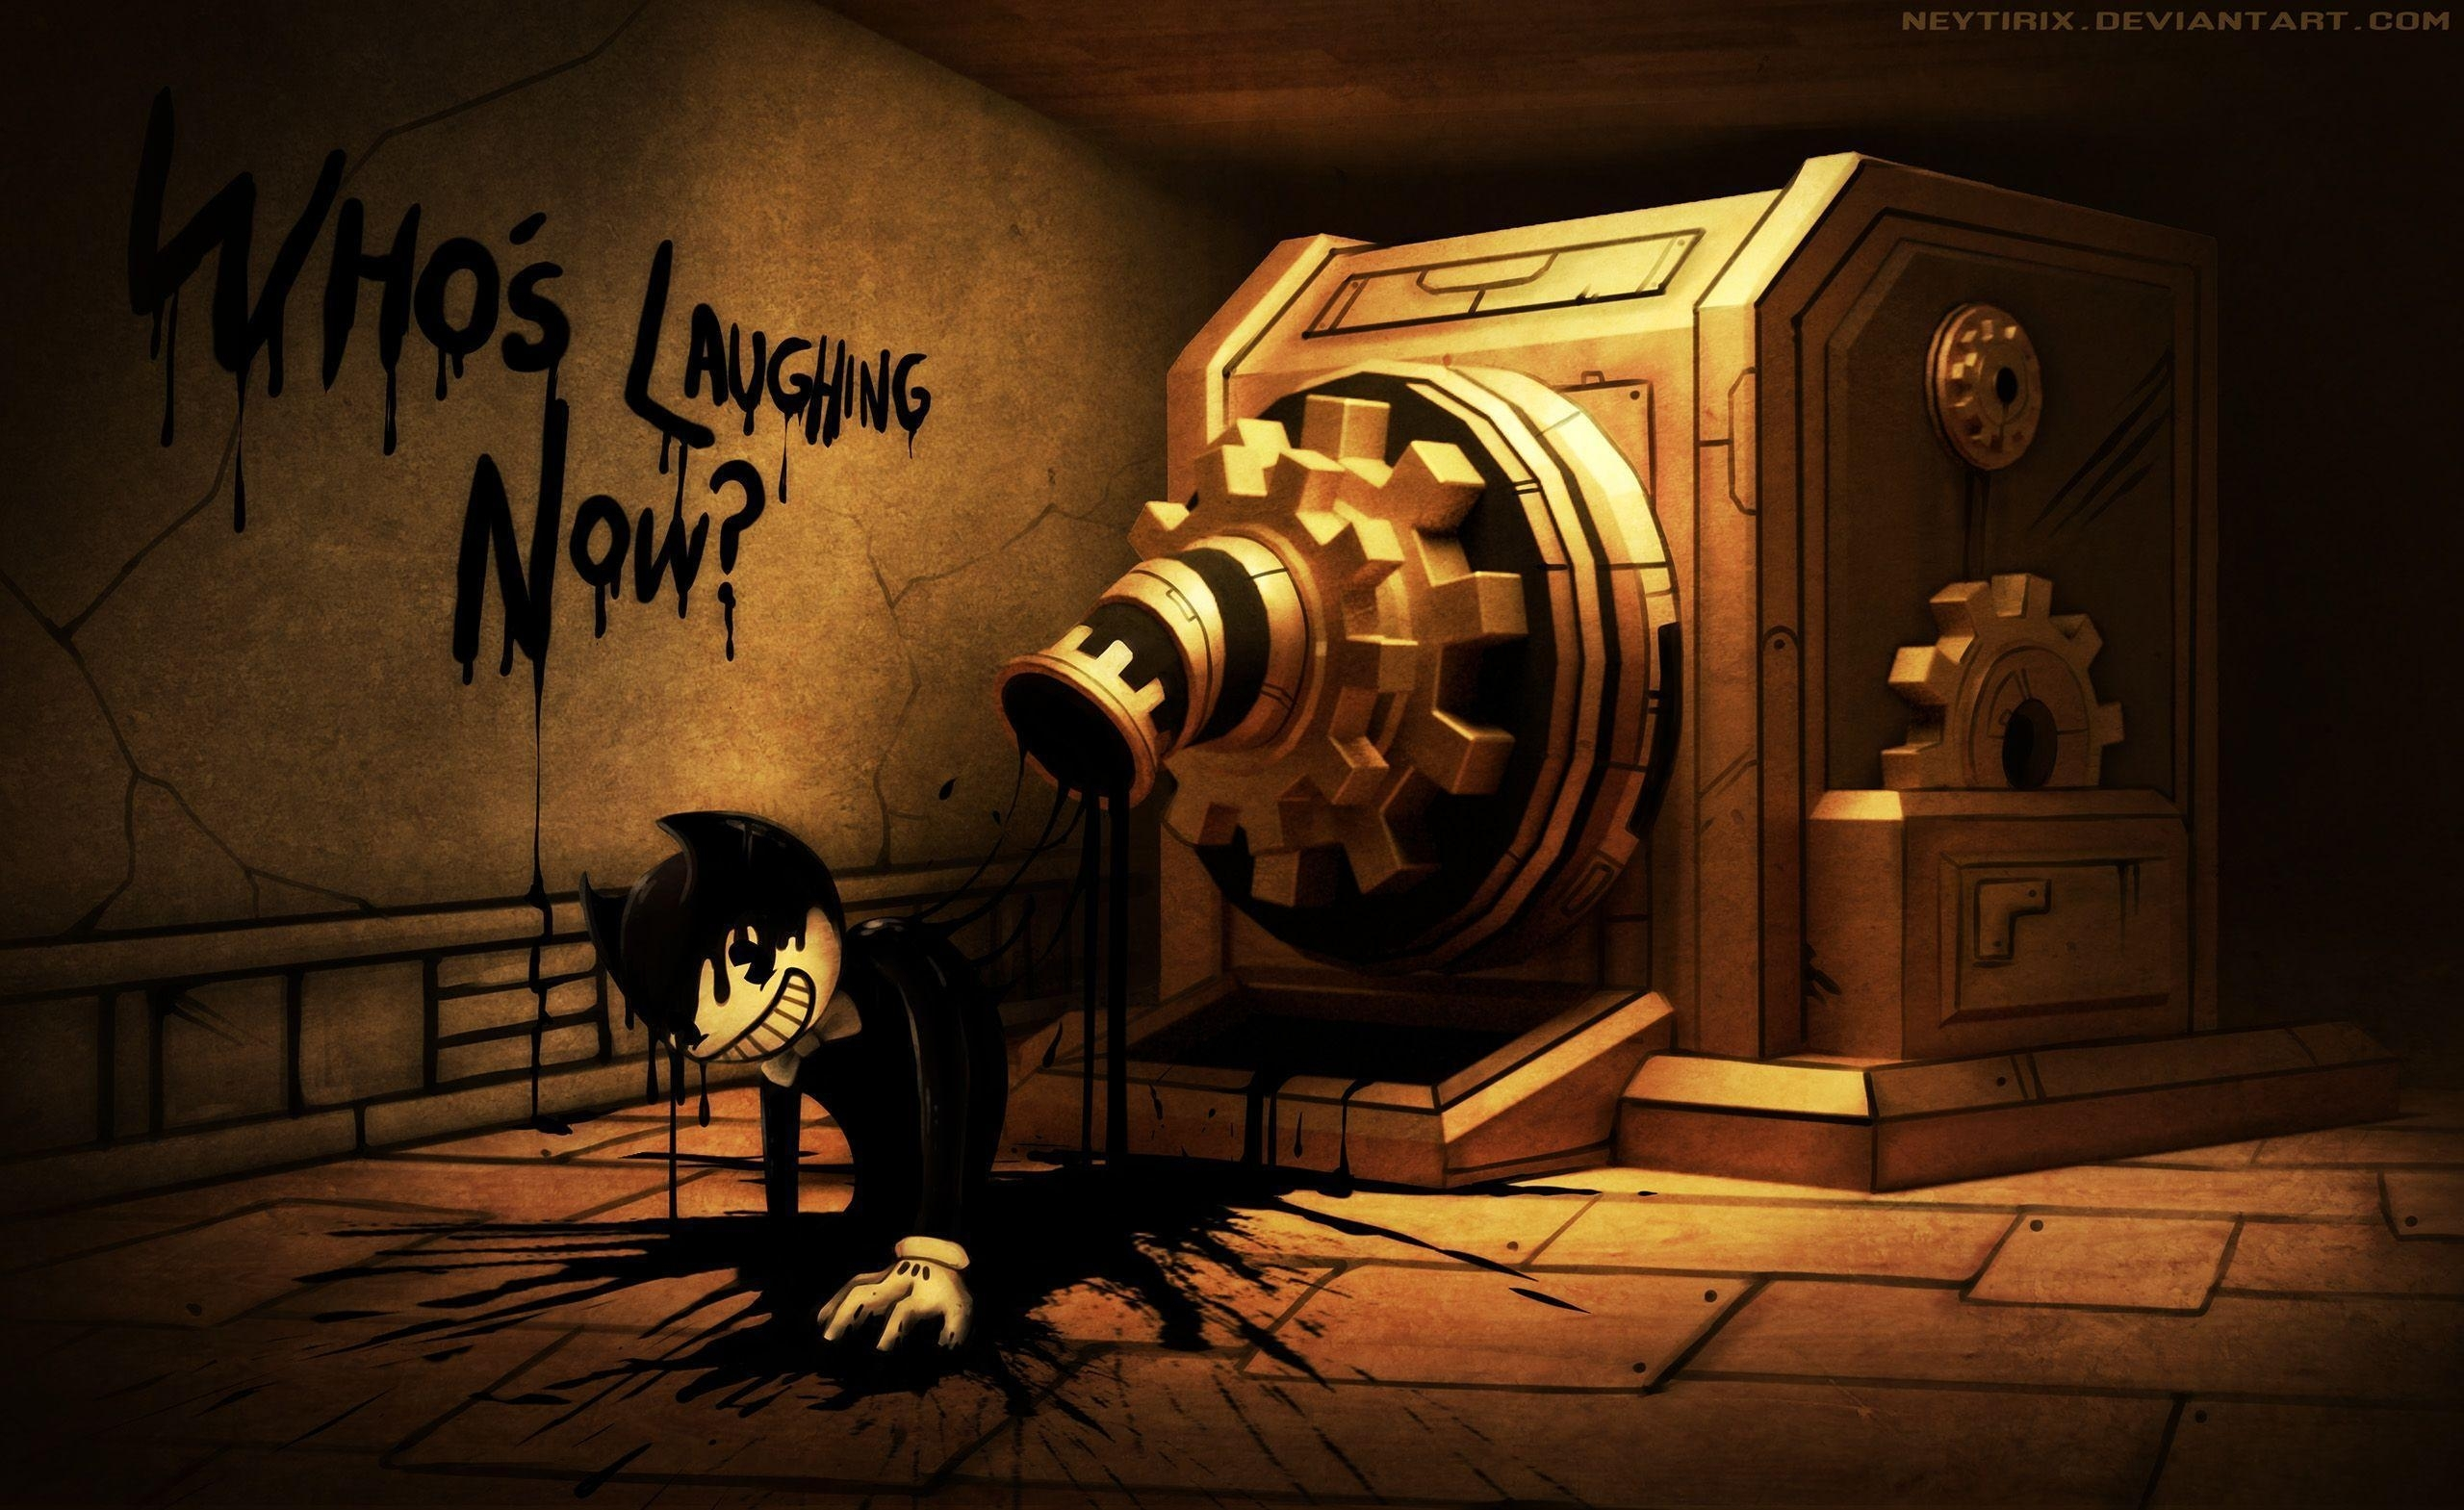 bendy and the ink machine wallpapers - wallpaper cave